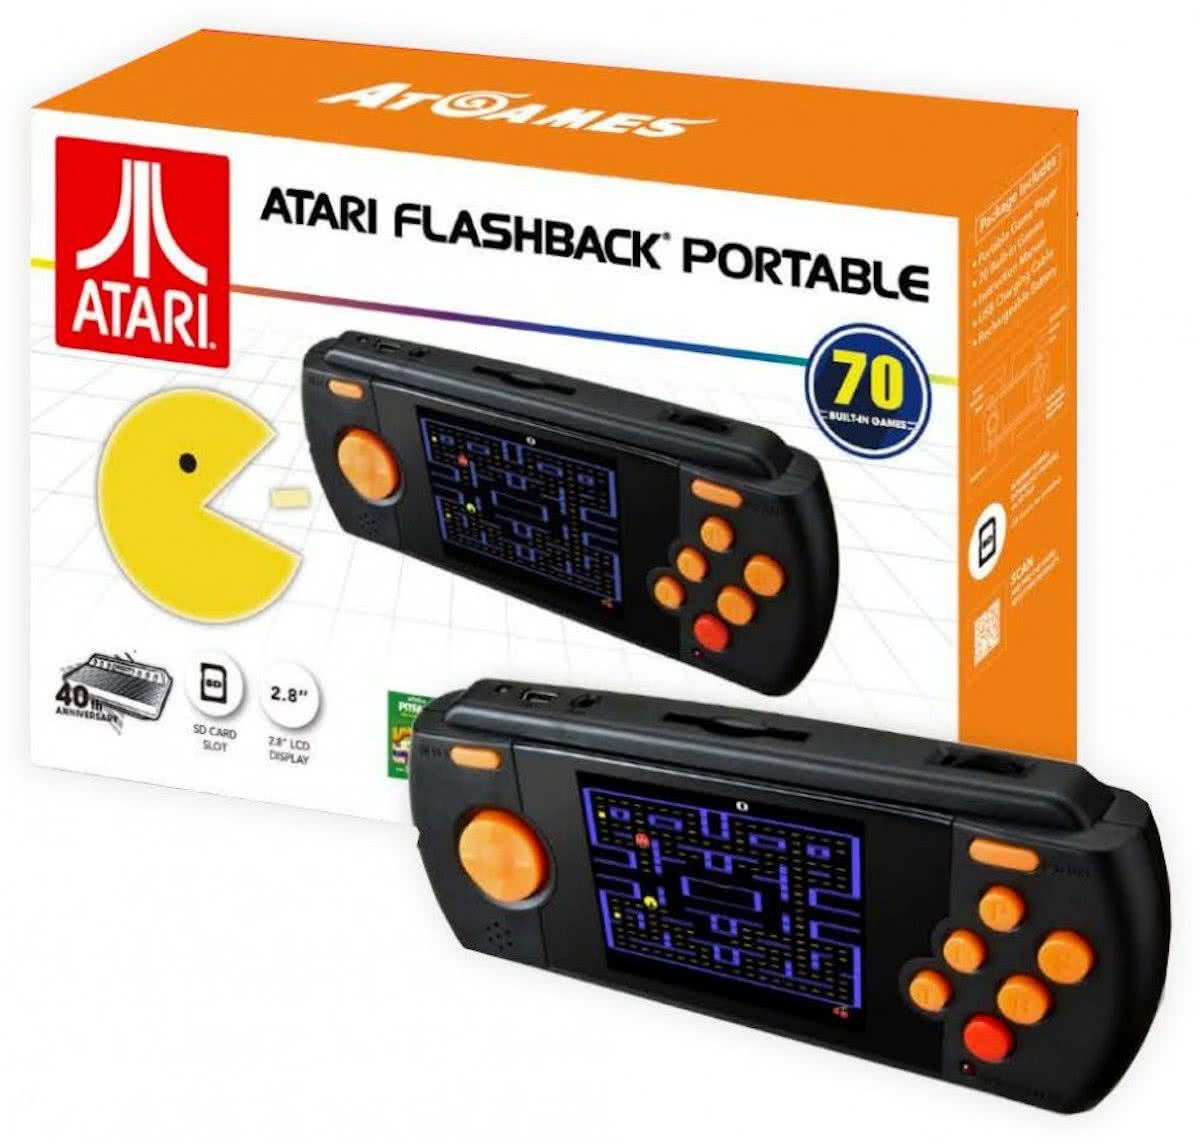 Console RETRO - PORTABLE ATARI Flashback - 70 Games